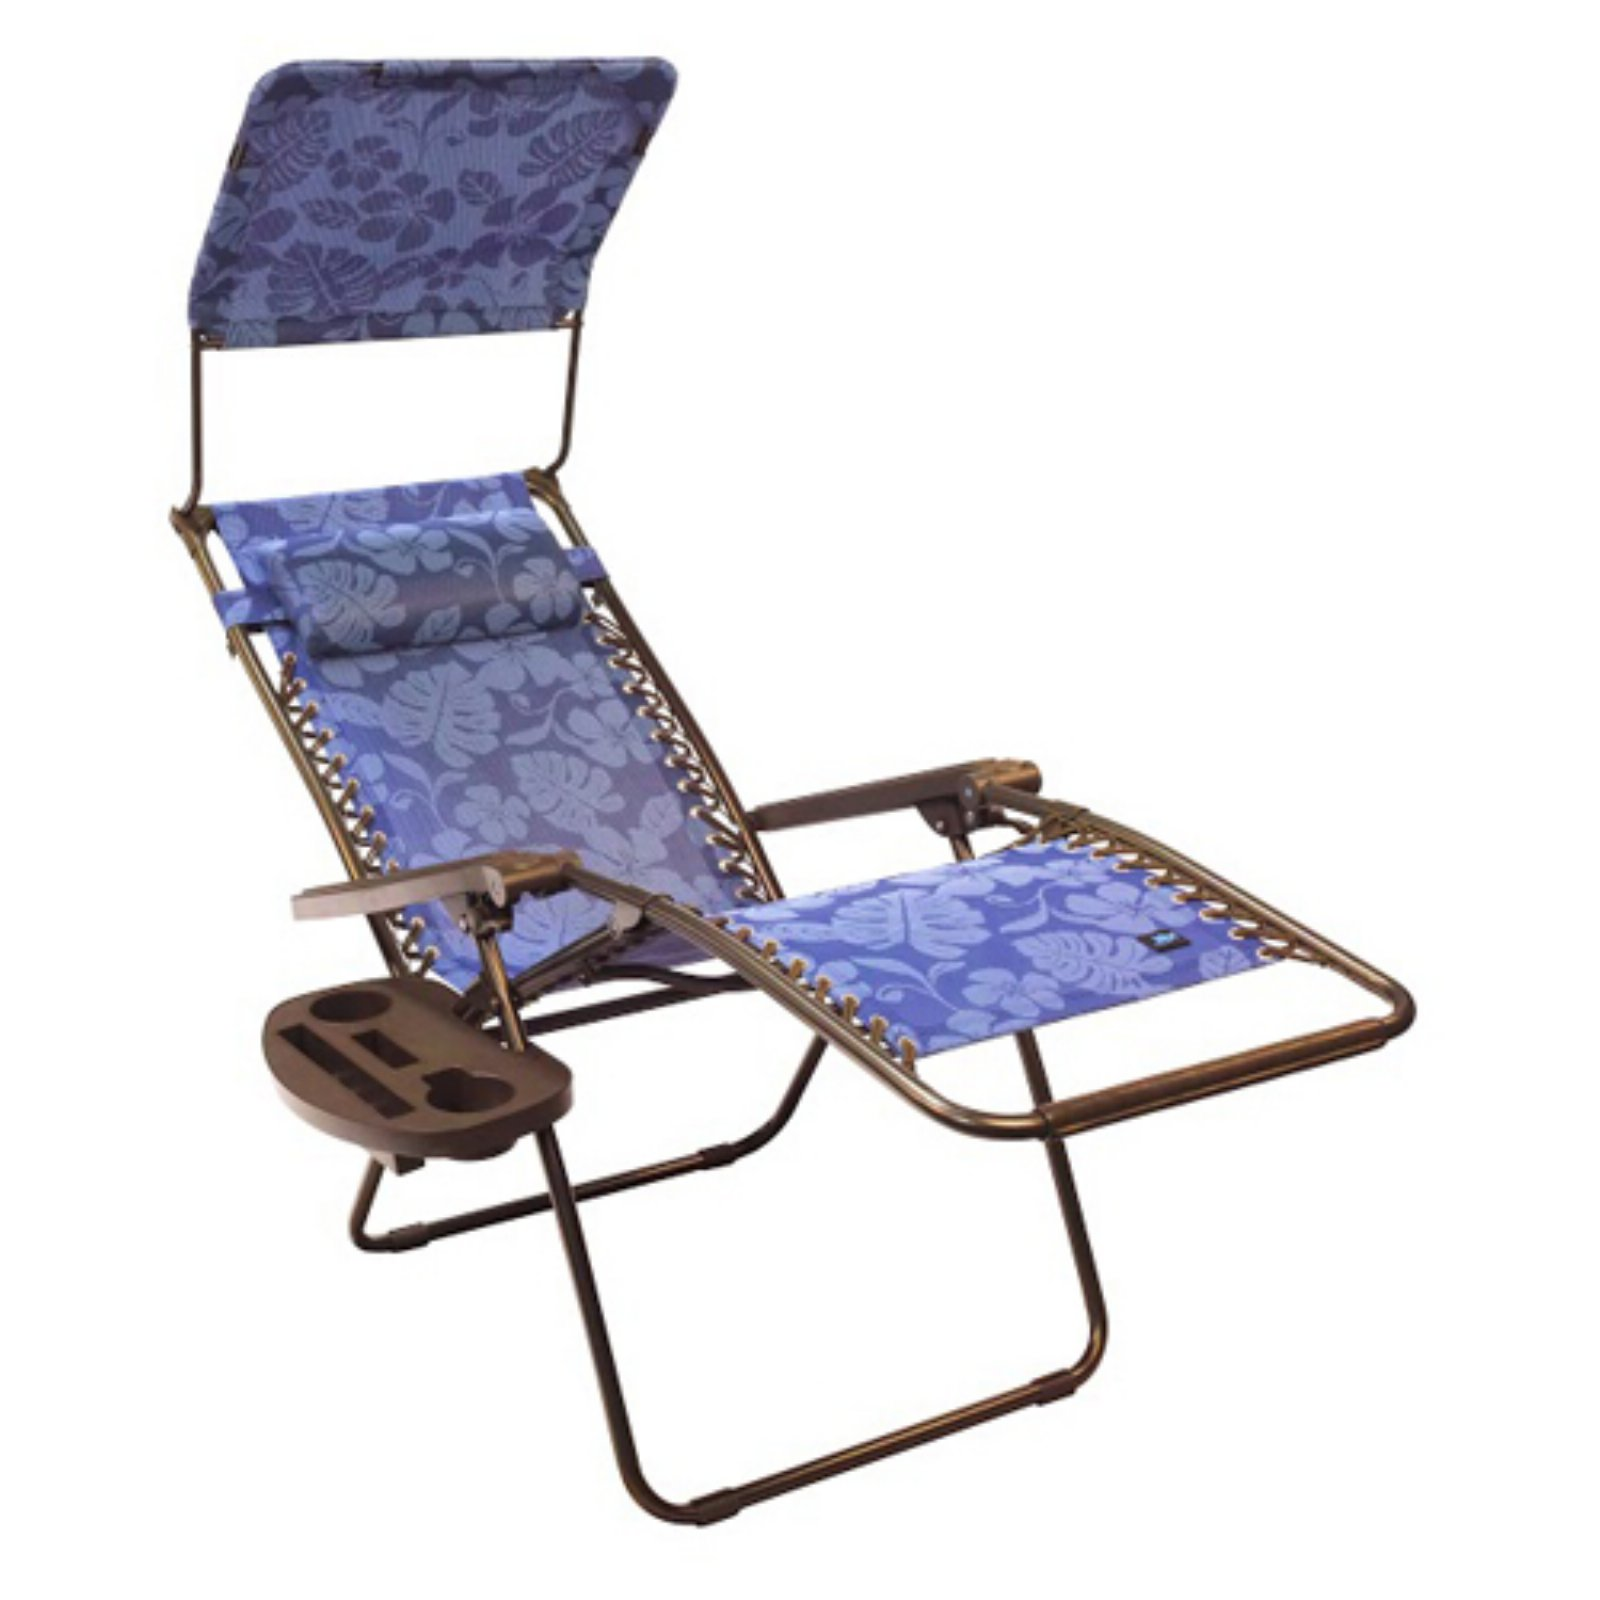 lounger shop gfc zero hammock lifestyle hammocks tray with chair canopy pillow bliss gravity side wide free